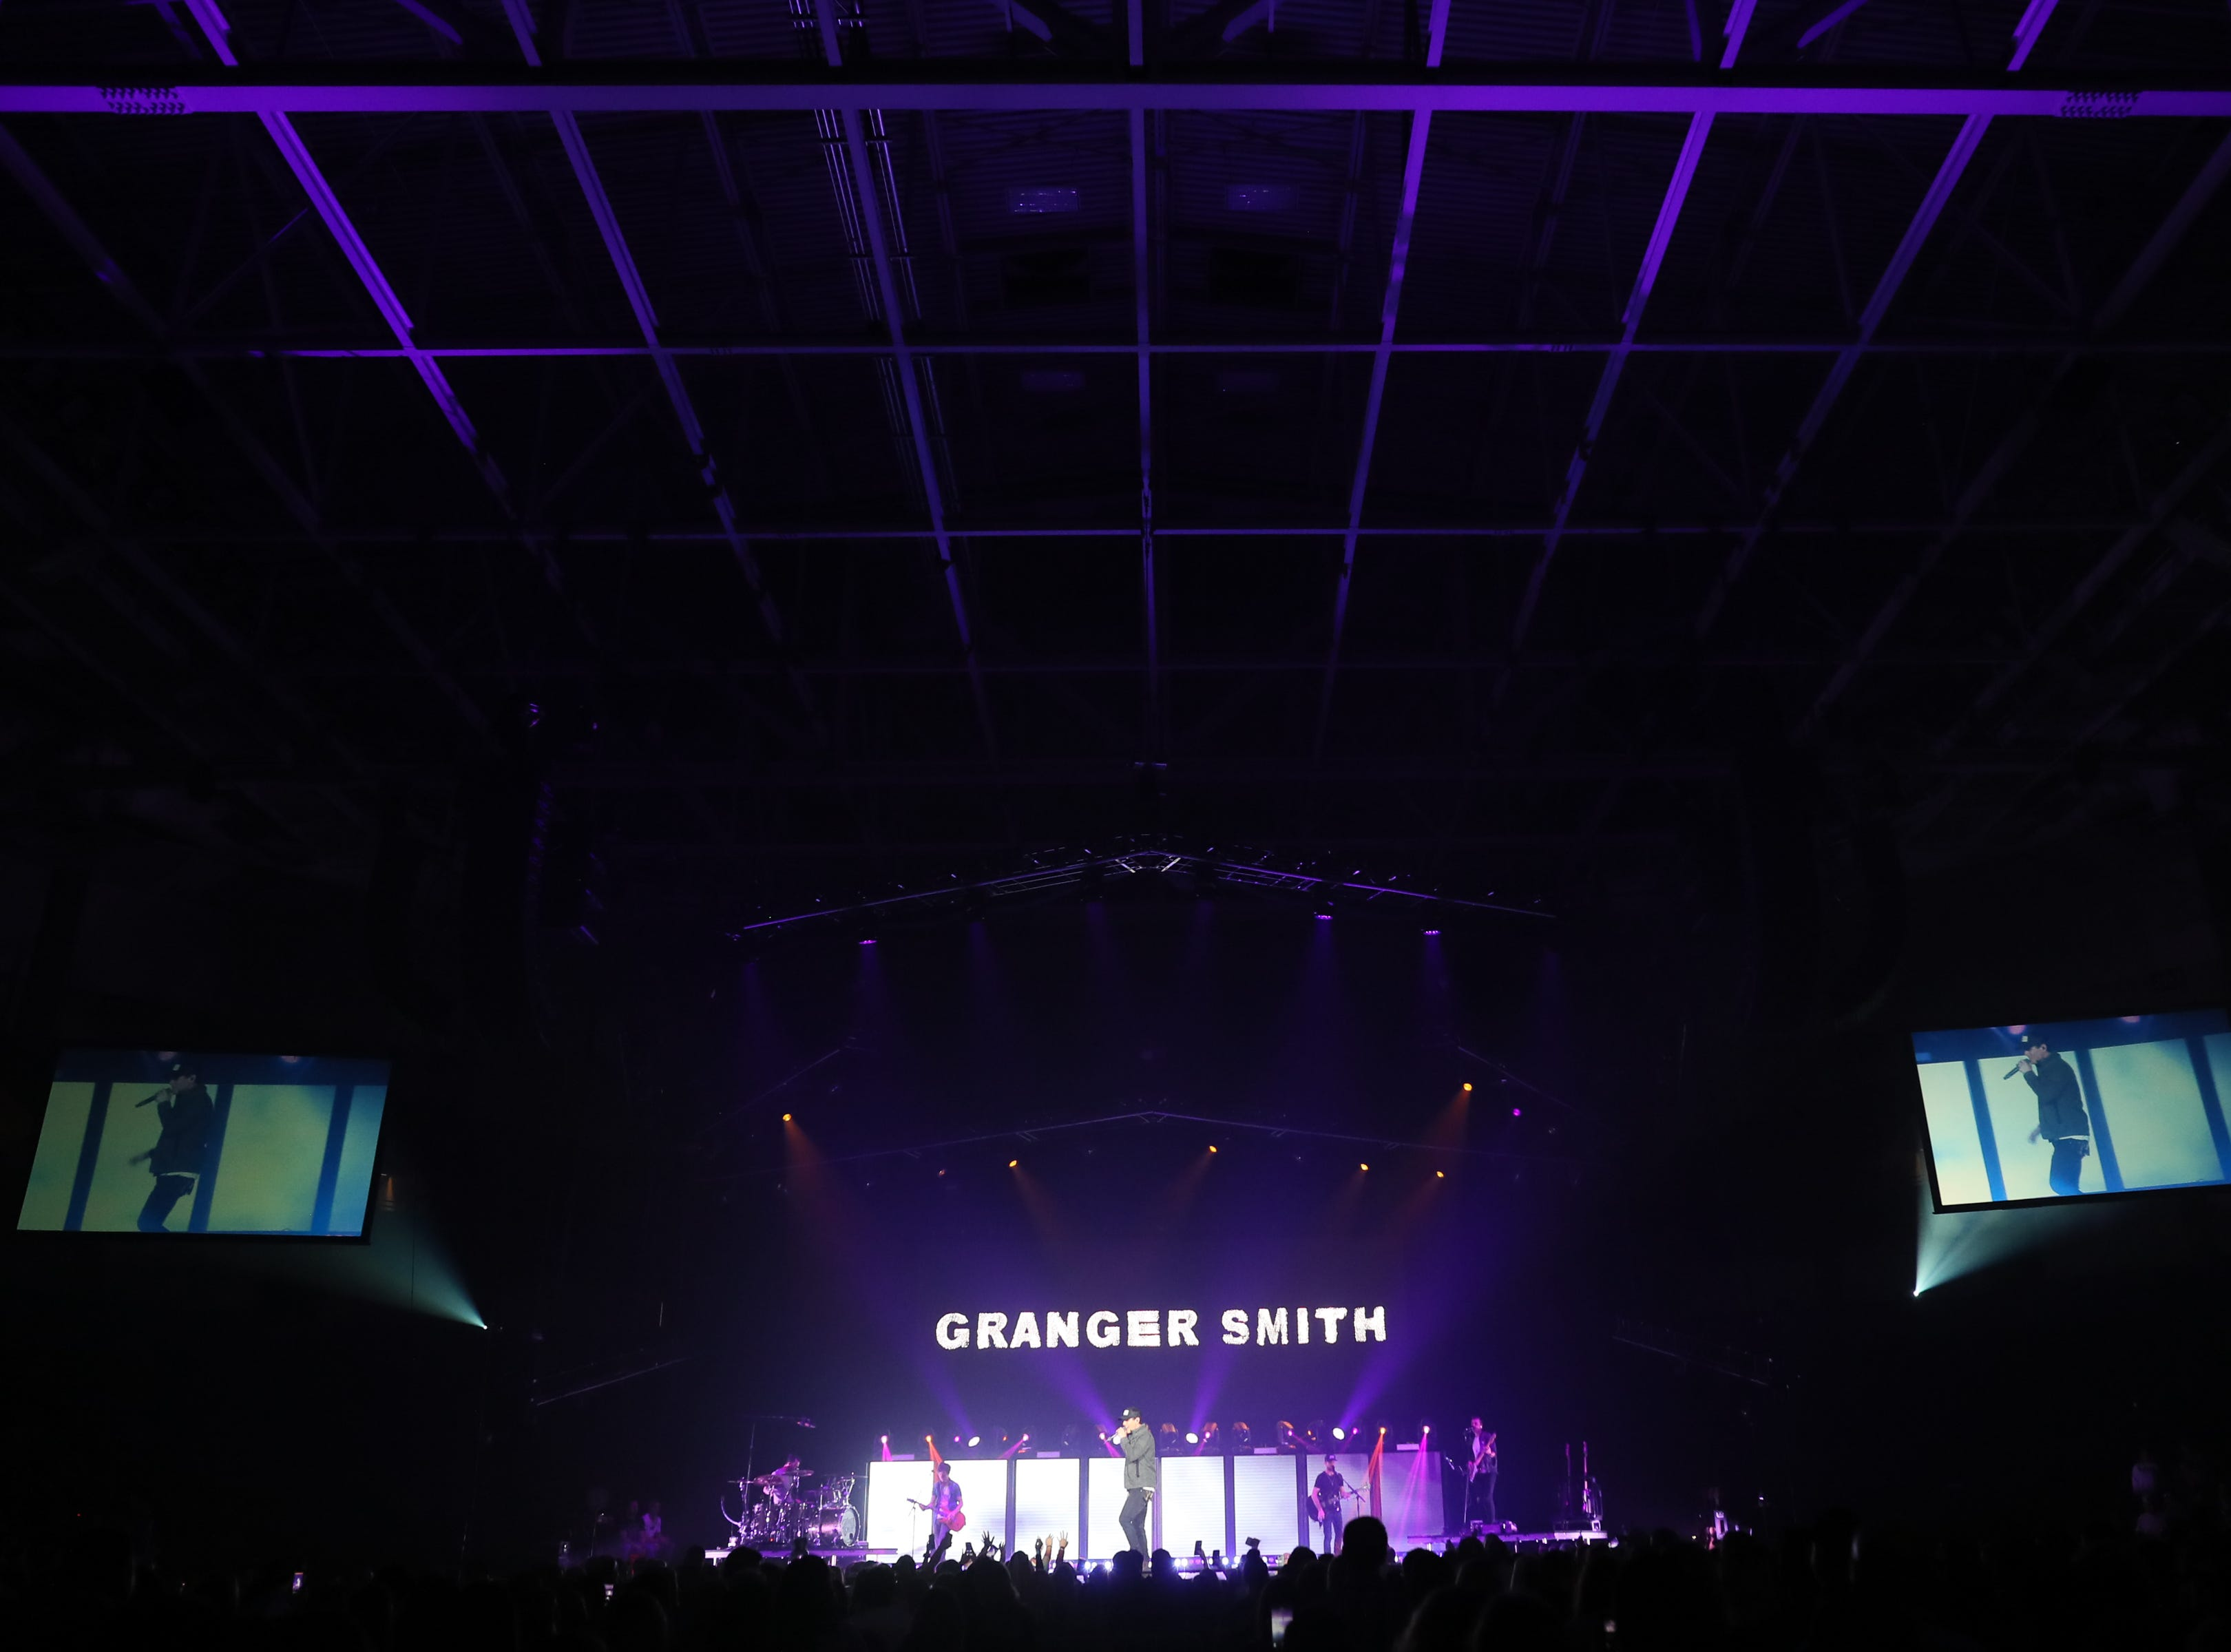 Granger Smith performs at the Landers Center in Southaven, Miss., Friday, Jan. 18, 2019.